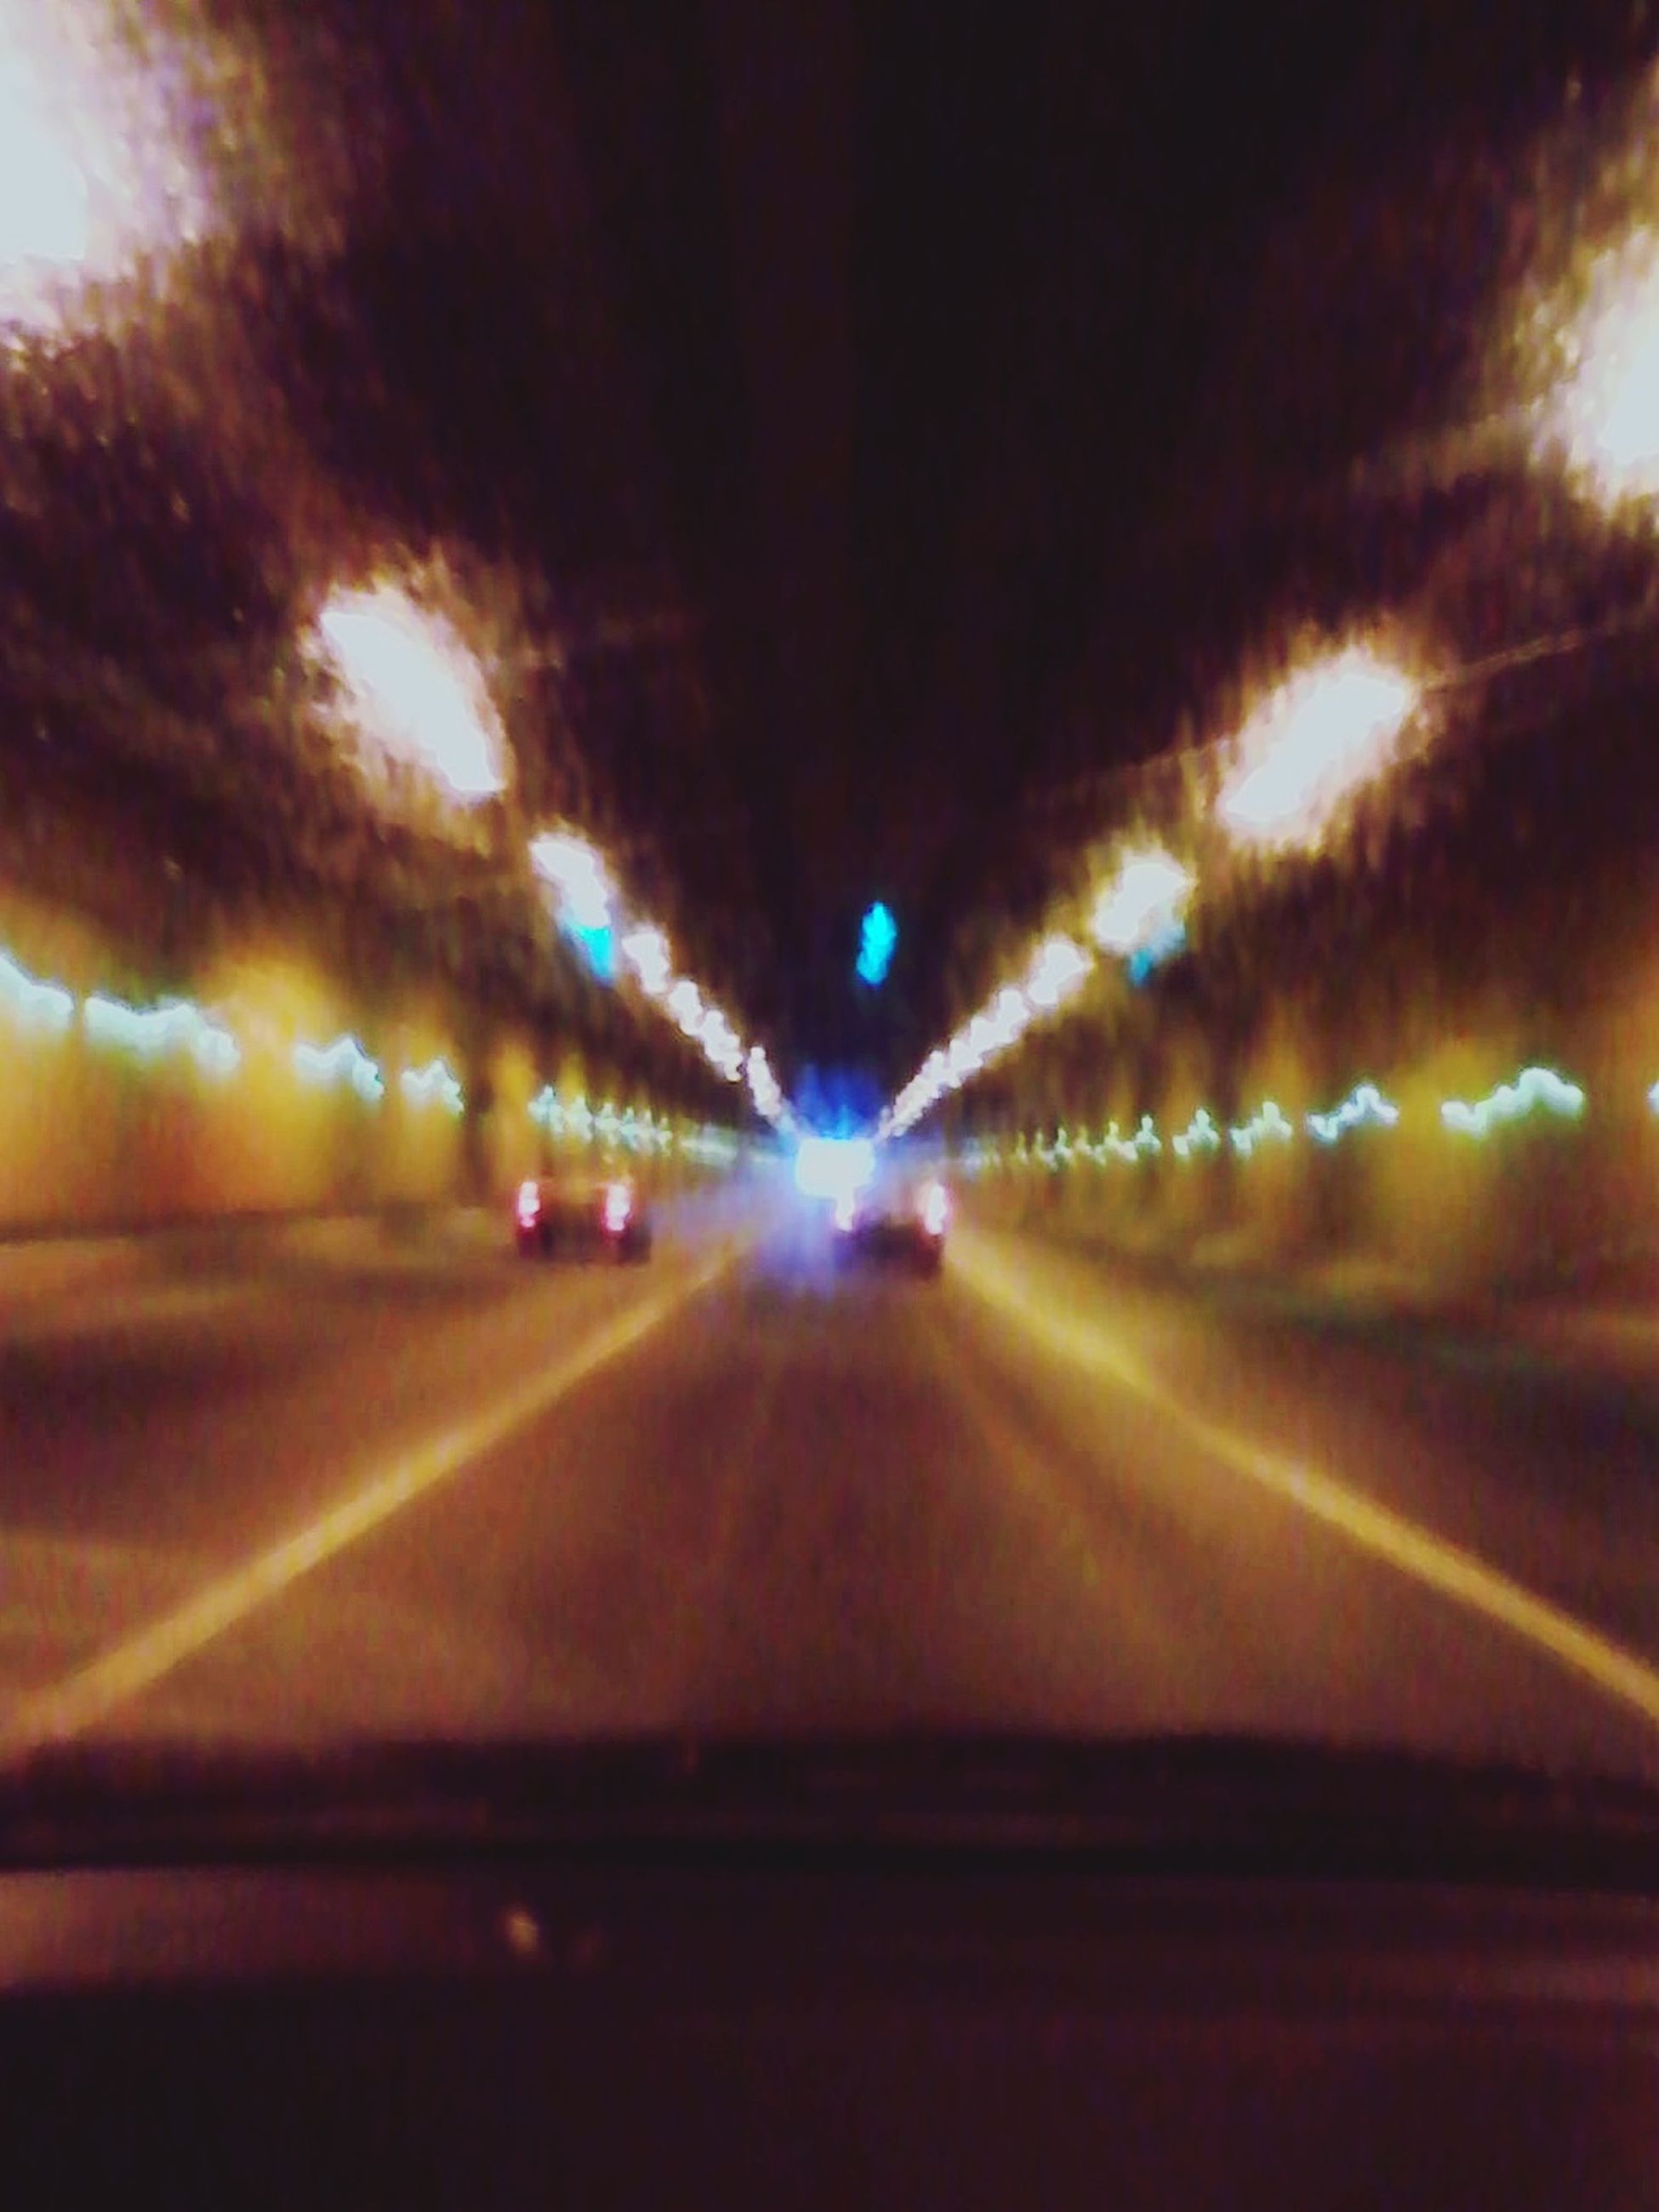 transportation, illuminated, the way forward, road, diminishing perspective, vanishing point, night, road marking, tunnel, indoors, blurred motion, lighting equipment, motion, windshield, sky, glass - material, light - natural phenomenon, car, mode of transport, no people